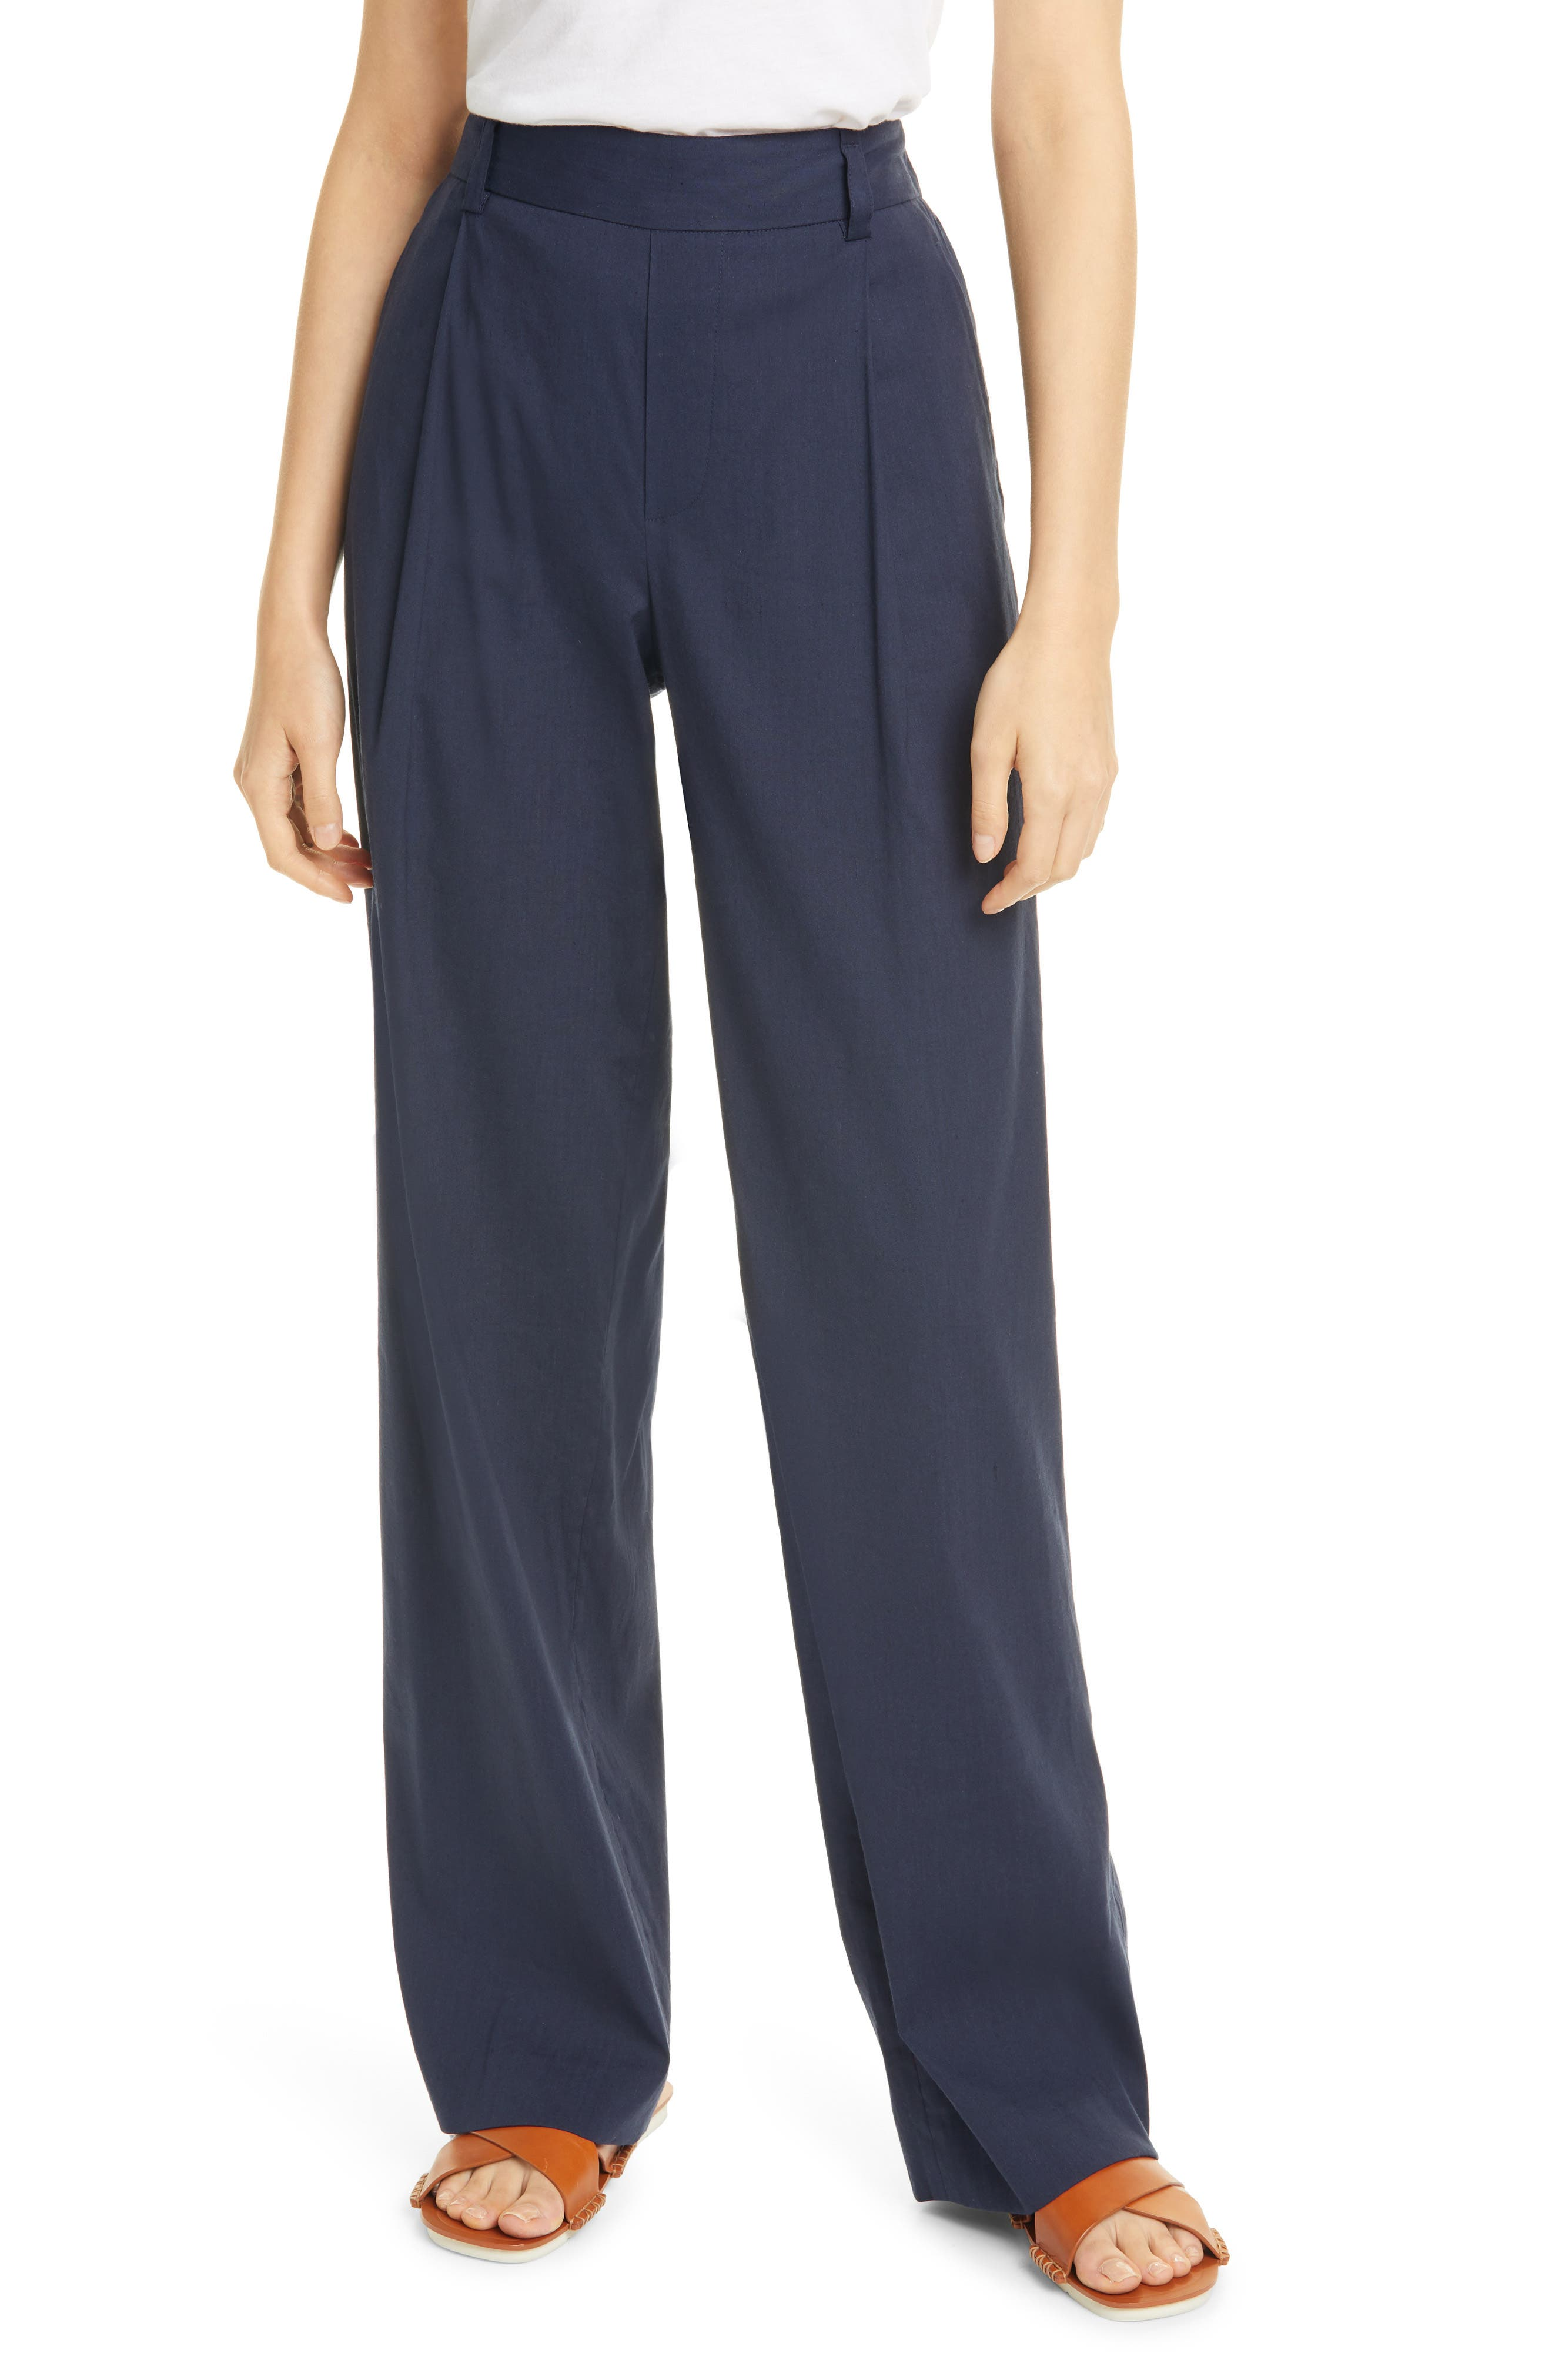 Vince Pleat Front Pull-On Linen Blend Trousers   Nordstrom